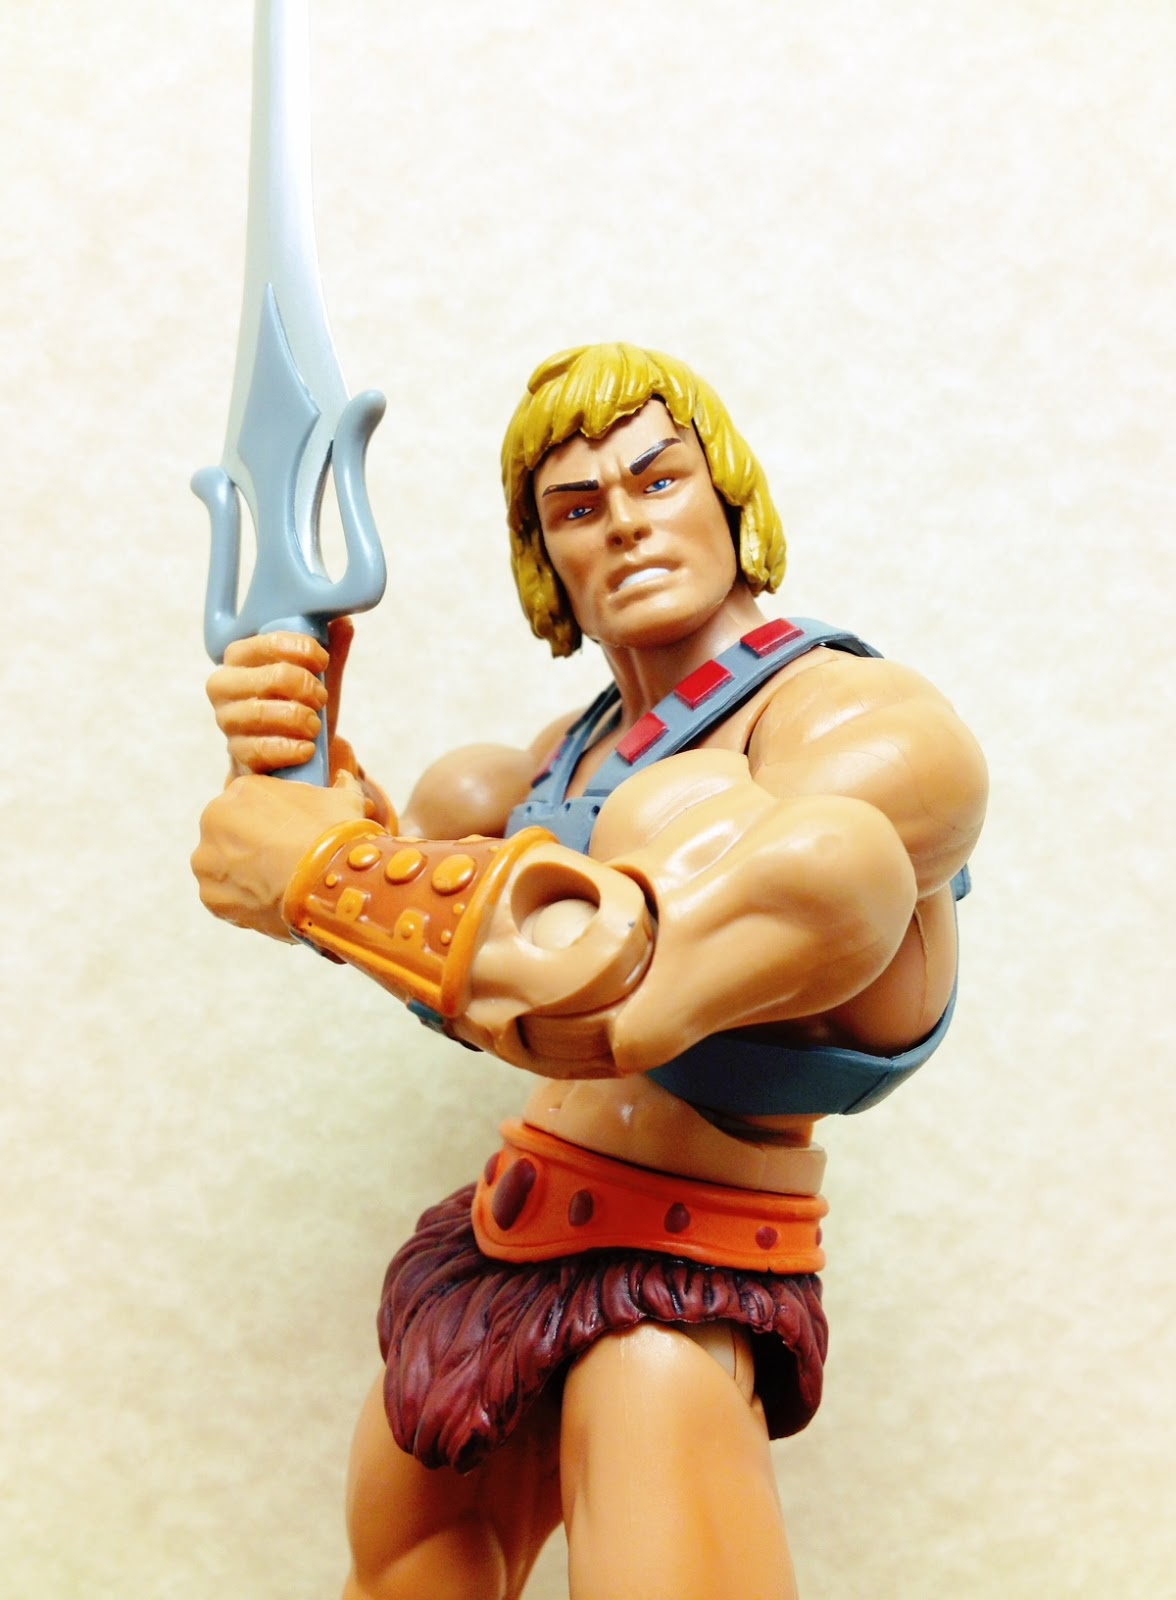 Heman Action Figure: Combo's Action Figure Collection: He-Man (Masters Of The